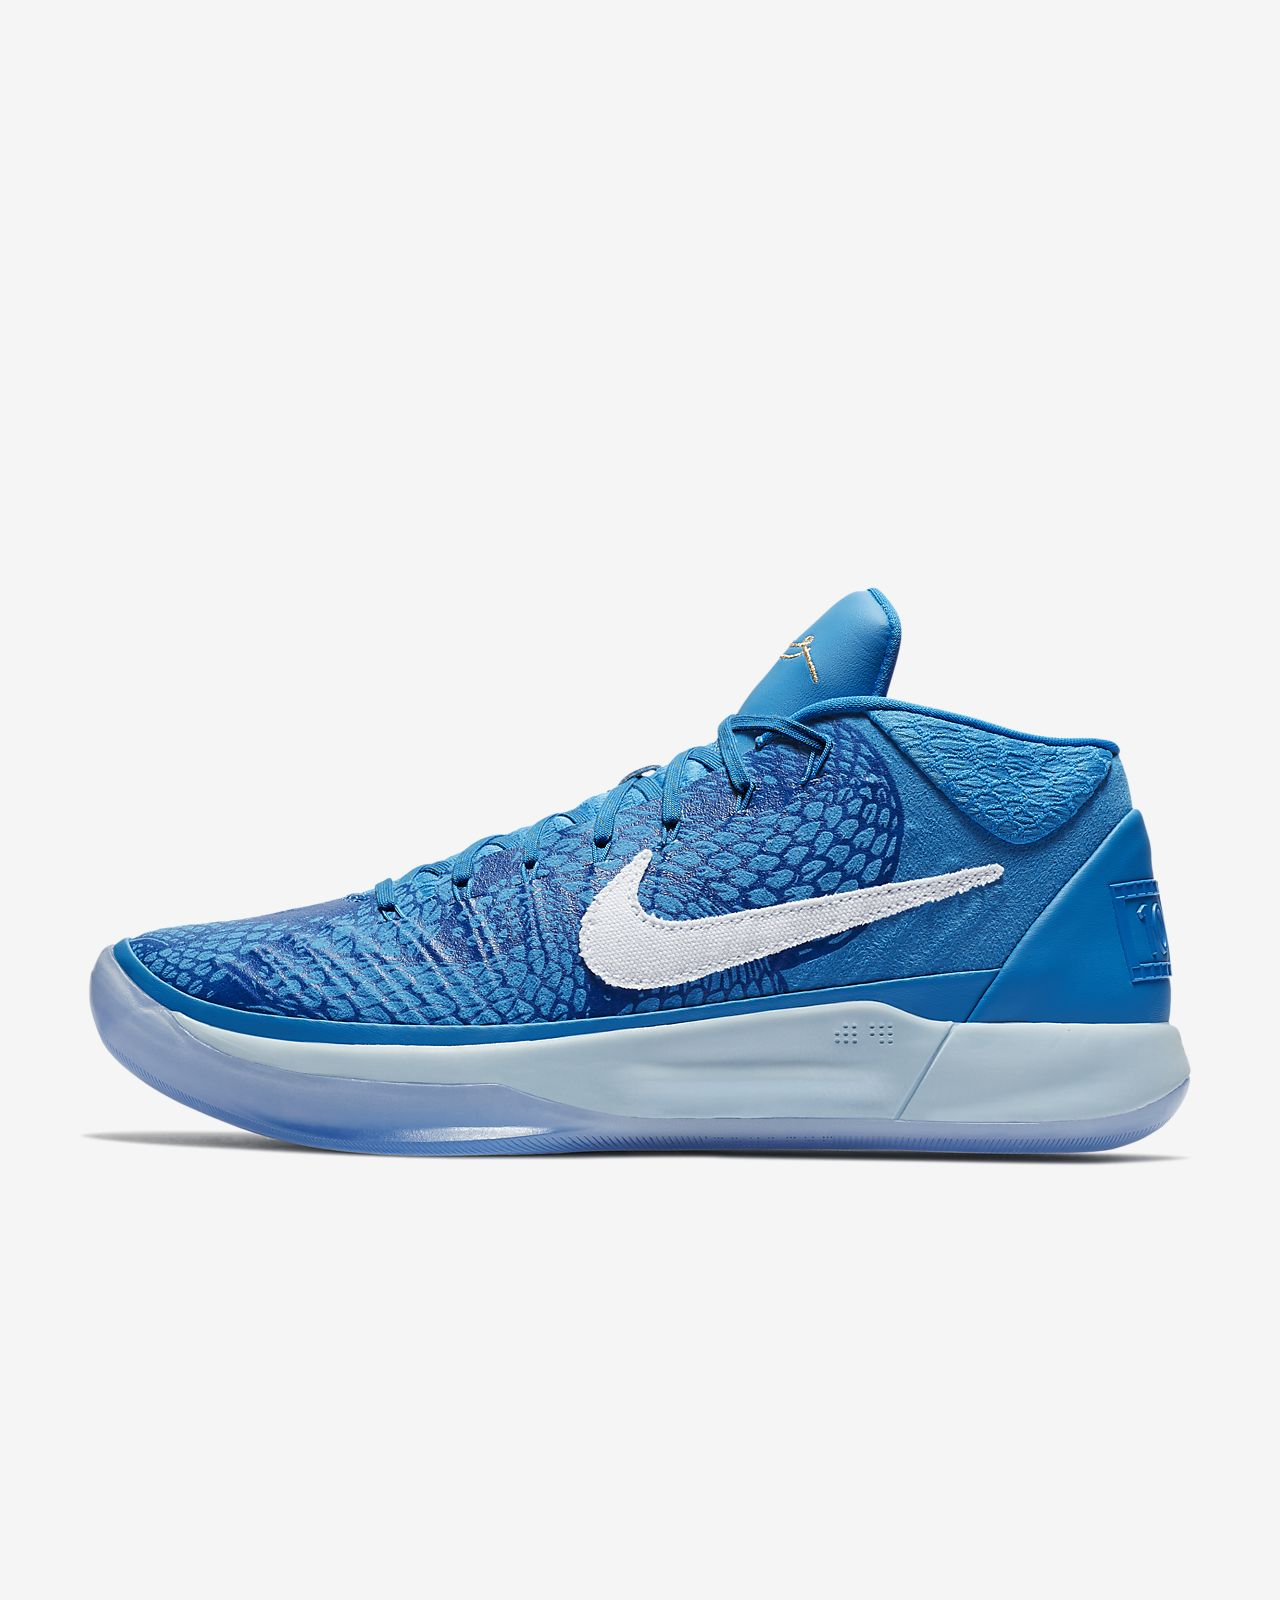 nike kobe a d derozan pe basketball shoe nike com rh nike com Nike LeBron Basketball's Best Nike Basketball Shoes